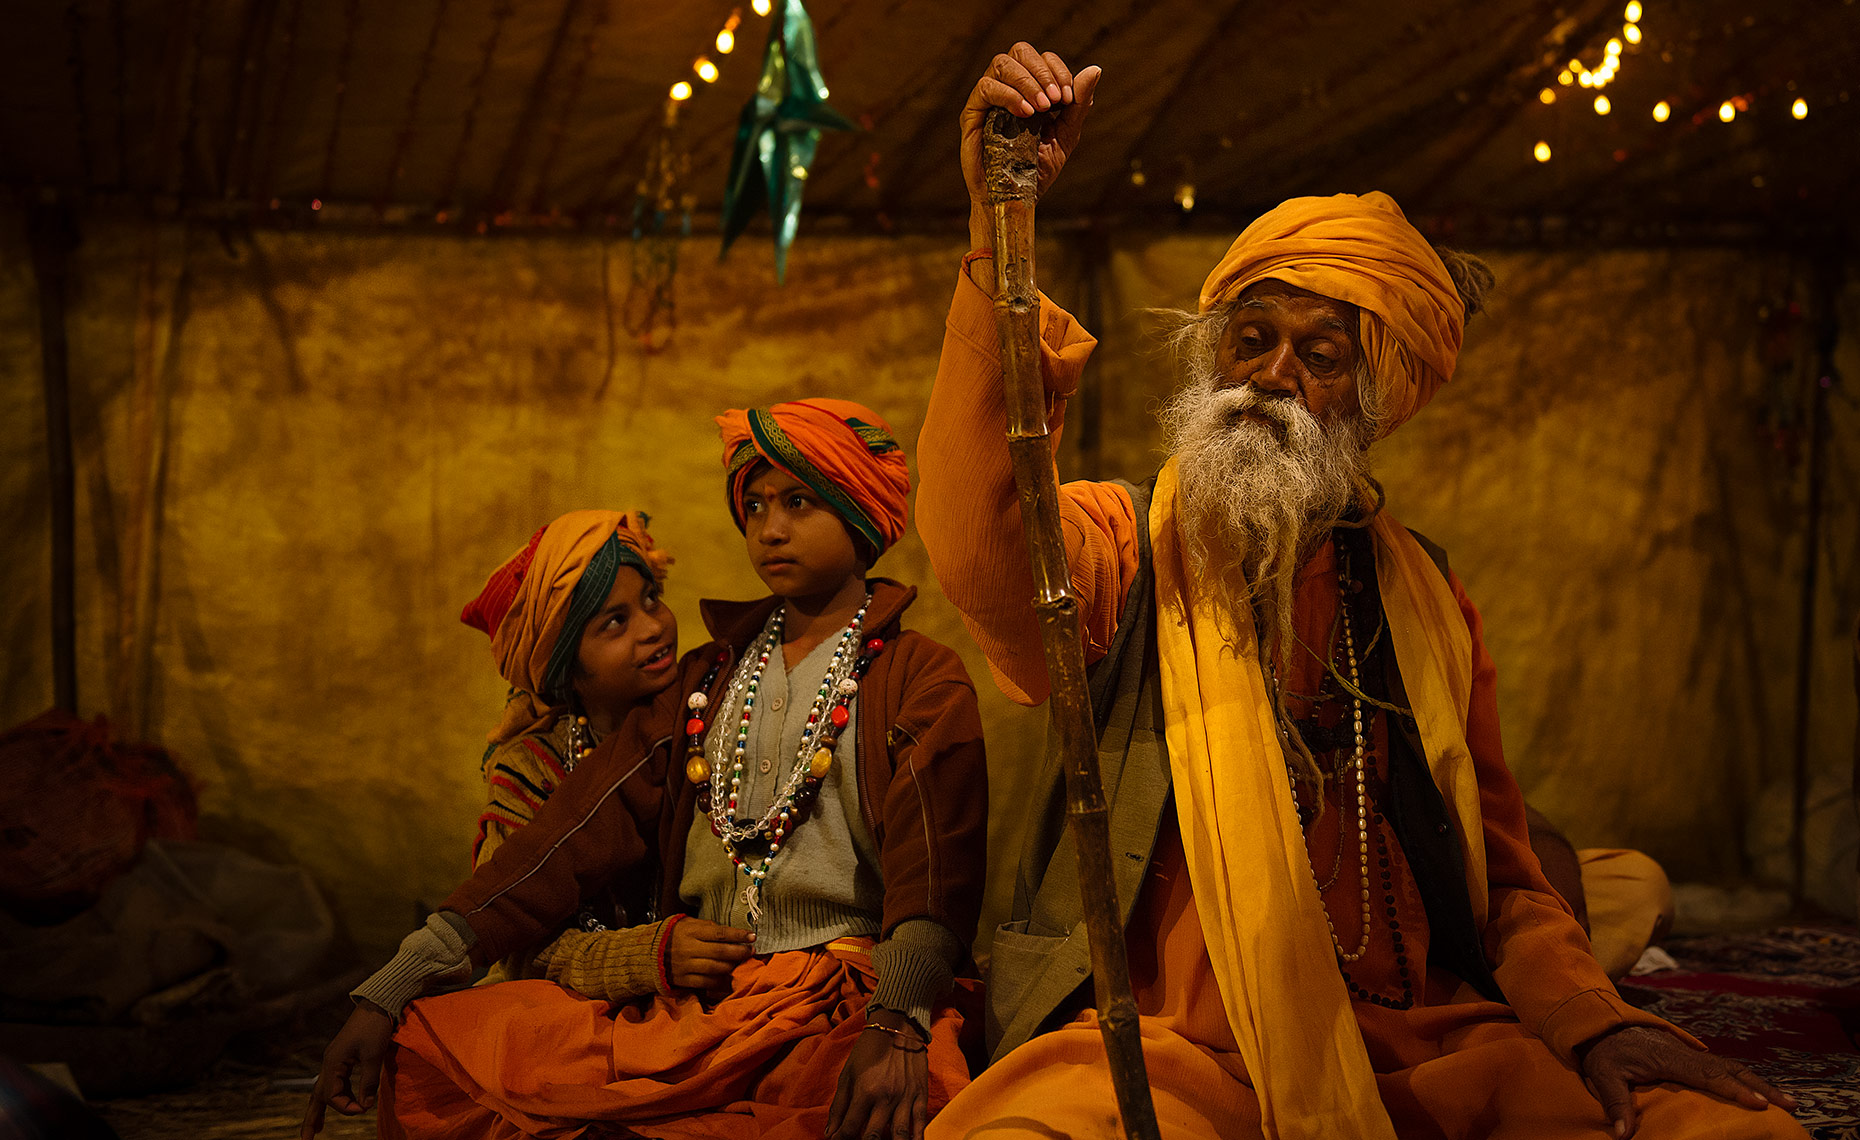 Sadhu And Young Apprentices, Kumbh Mela, Allahabad, India